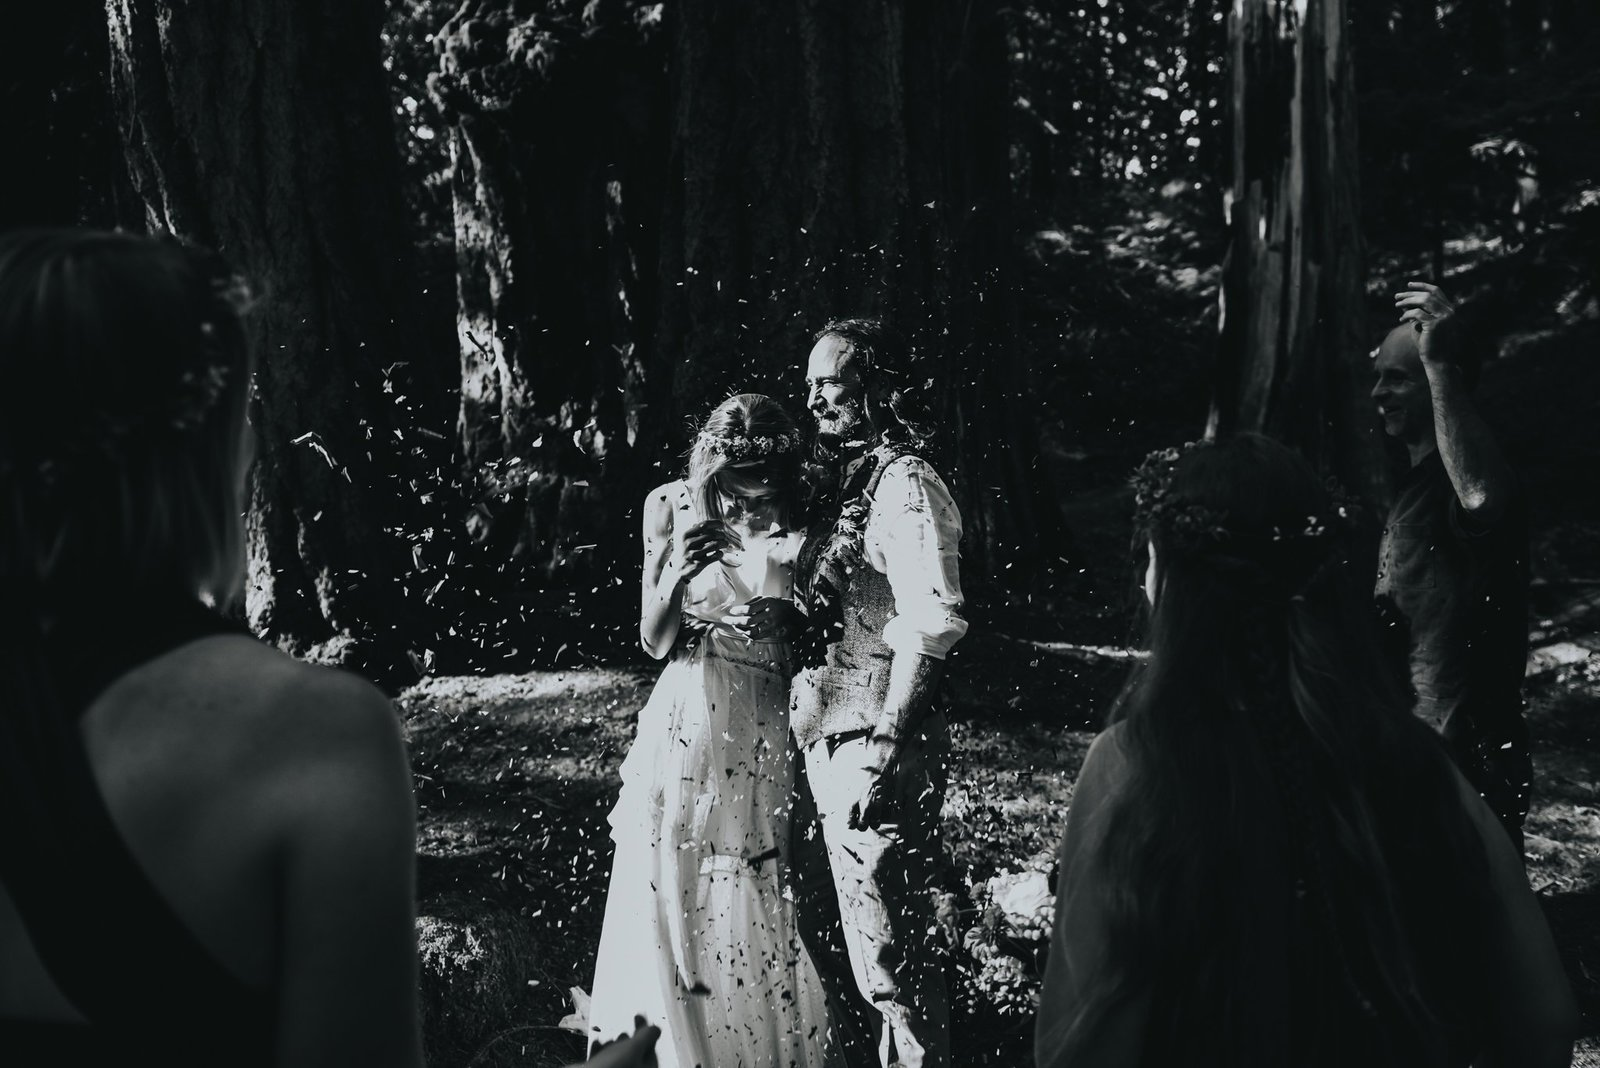 Bride and groom celebrate during intimate forest wedding.